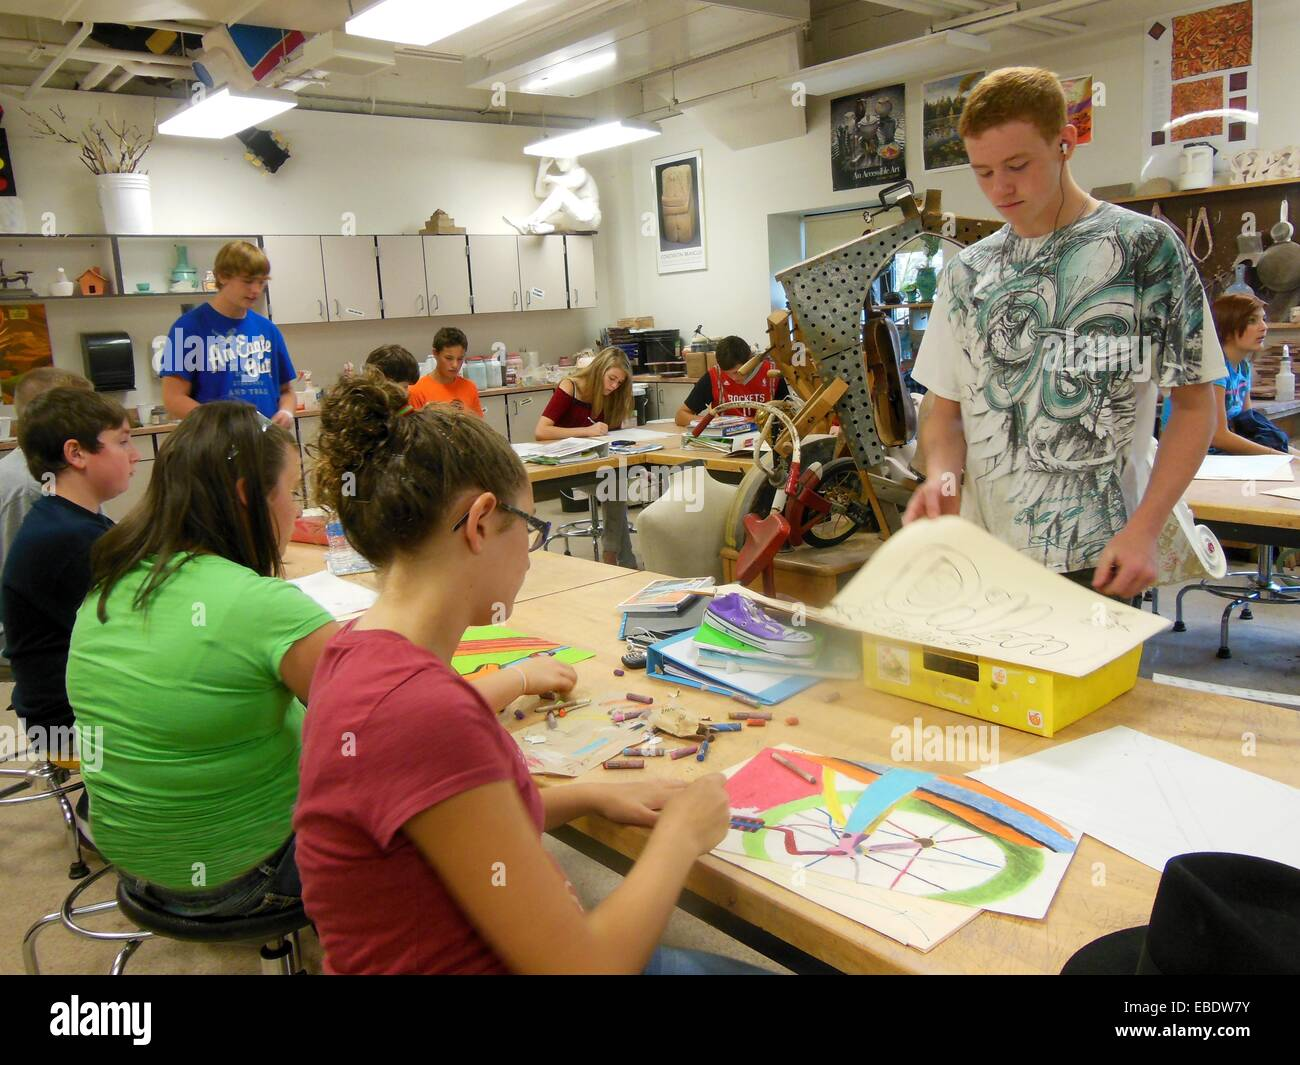 High school art class images for Craft schools in usa